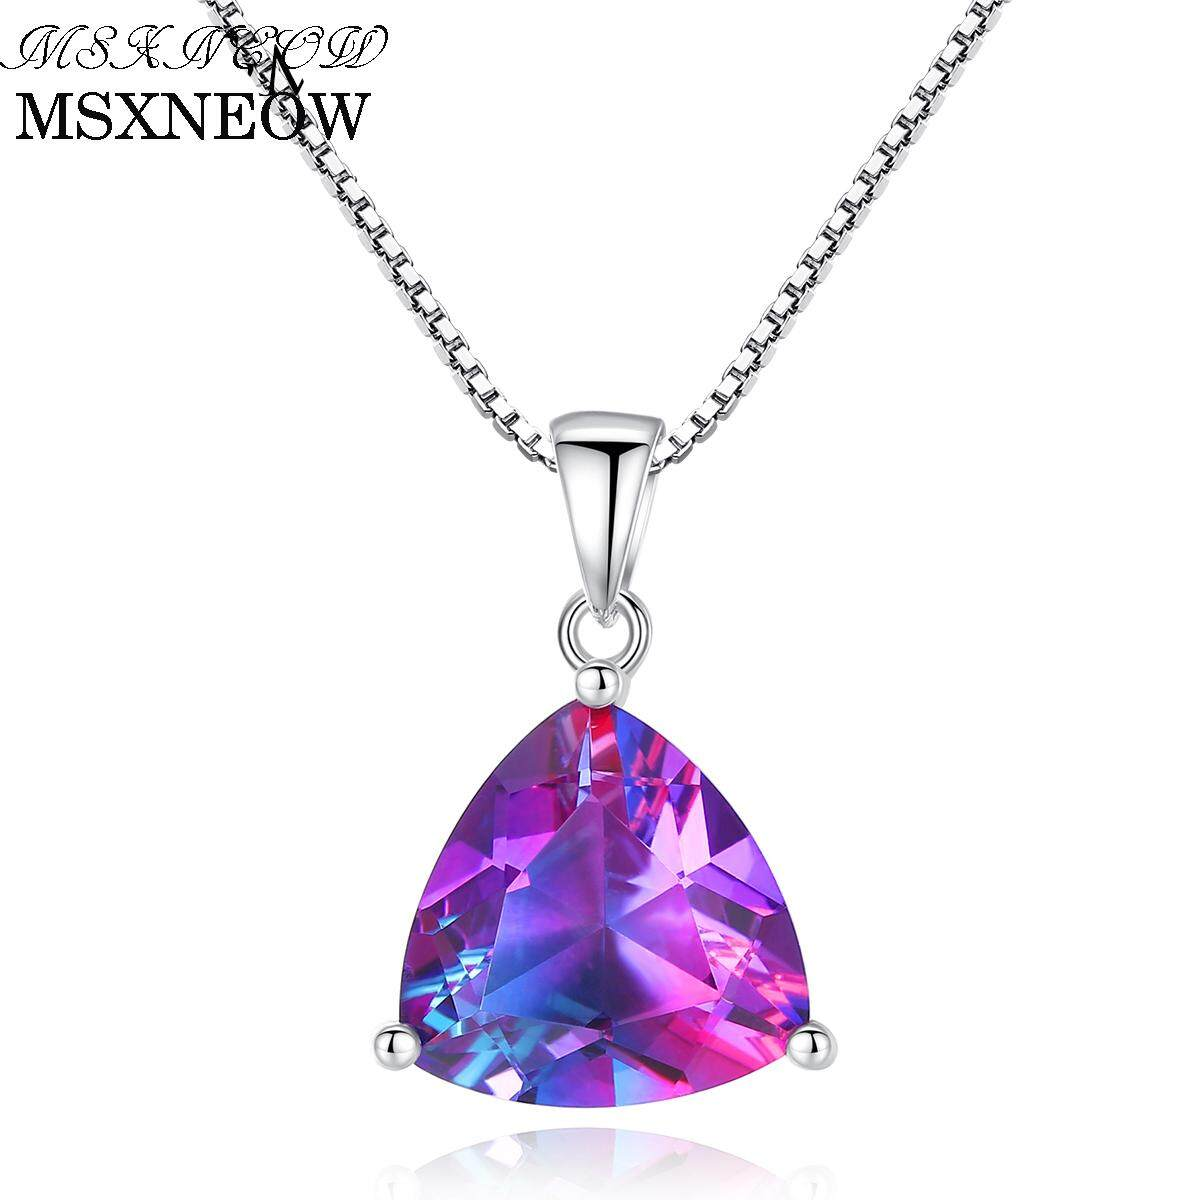 MSXNEOW 5.79ct Genuine Nature Rainbow Fire Mystic Topaz Pendant Trillion Concave Cut Pure Solid 925 Sterling Silver Necklace